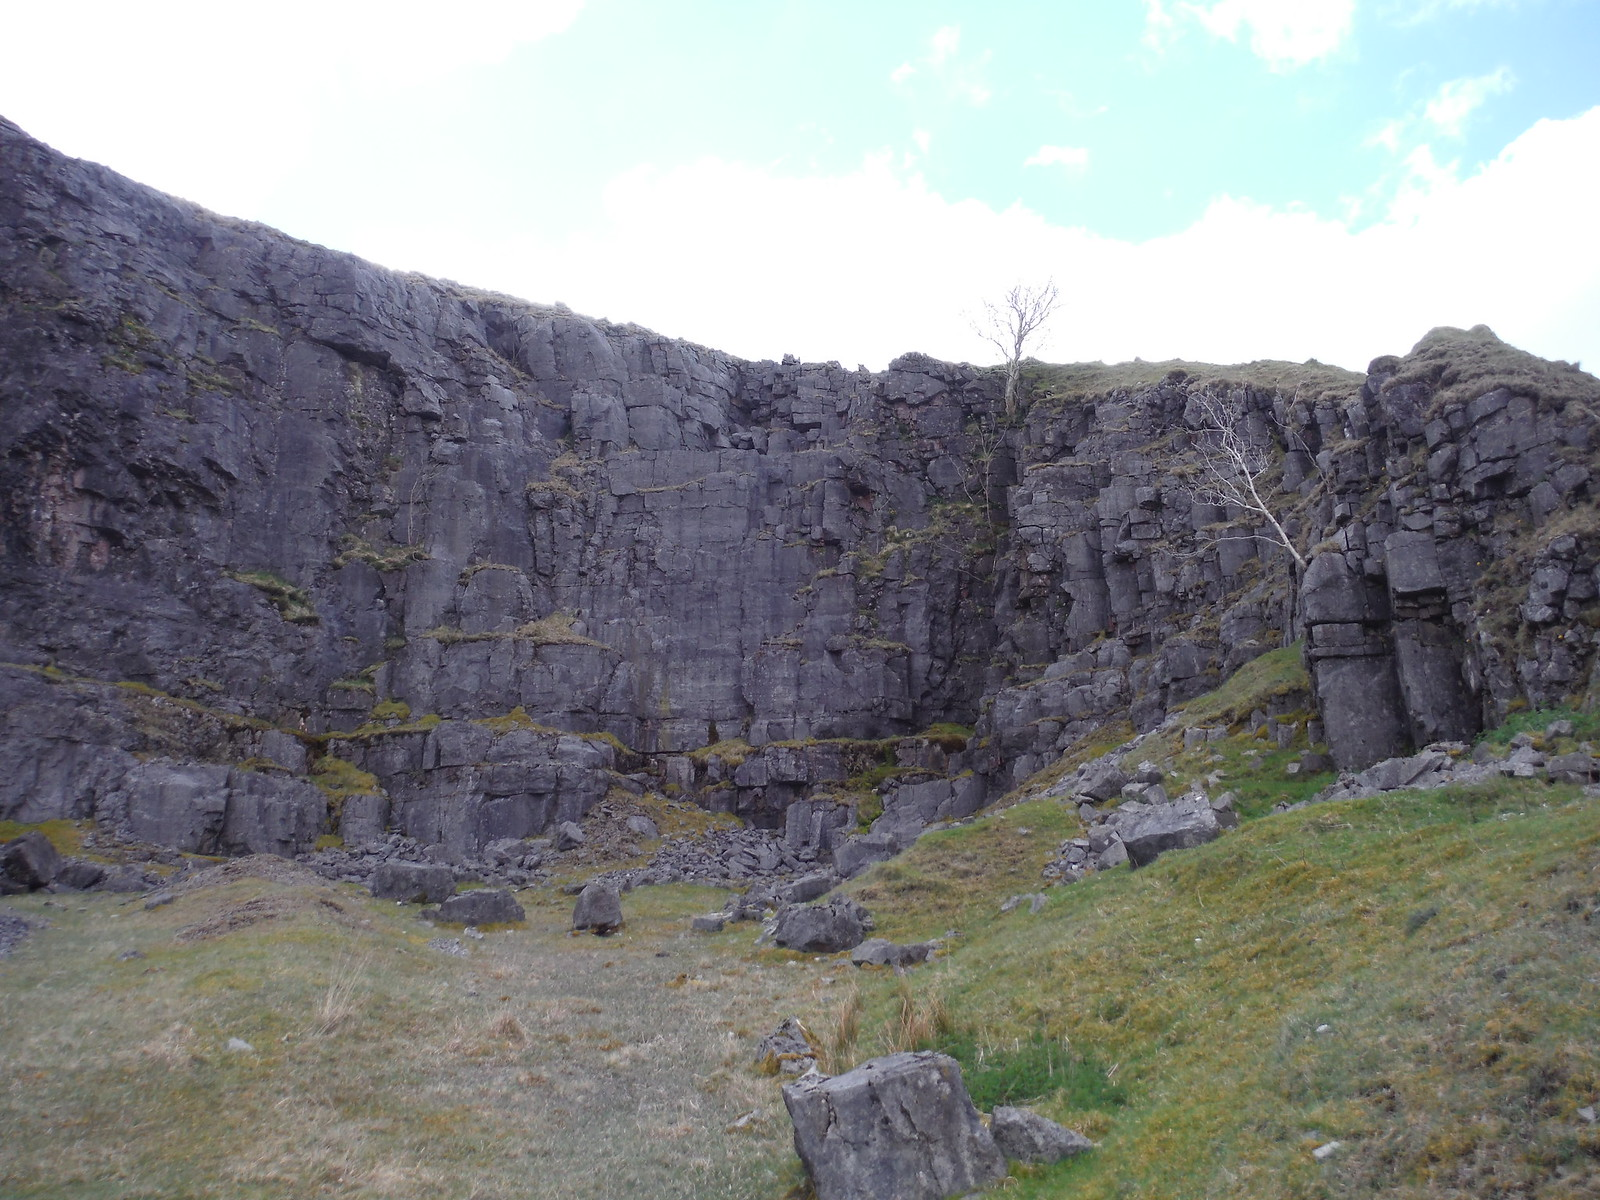 Quarry just off Dismantled Tramway SWC Walk 307 - Fforest Fawr Traverse (Craig y Nos to Llwyn-y-celyn)